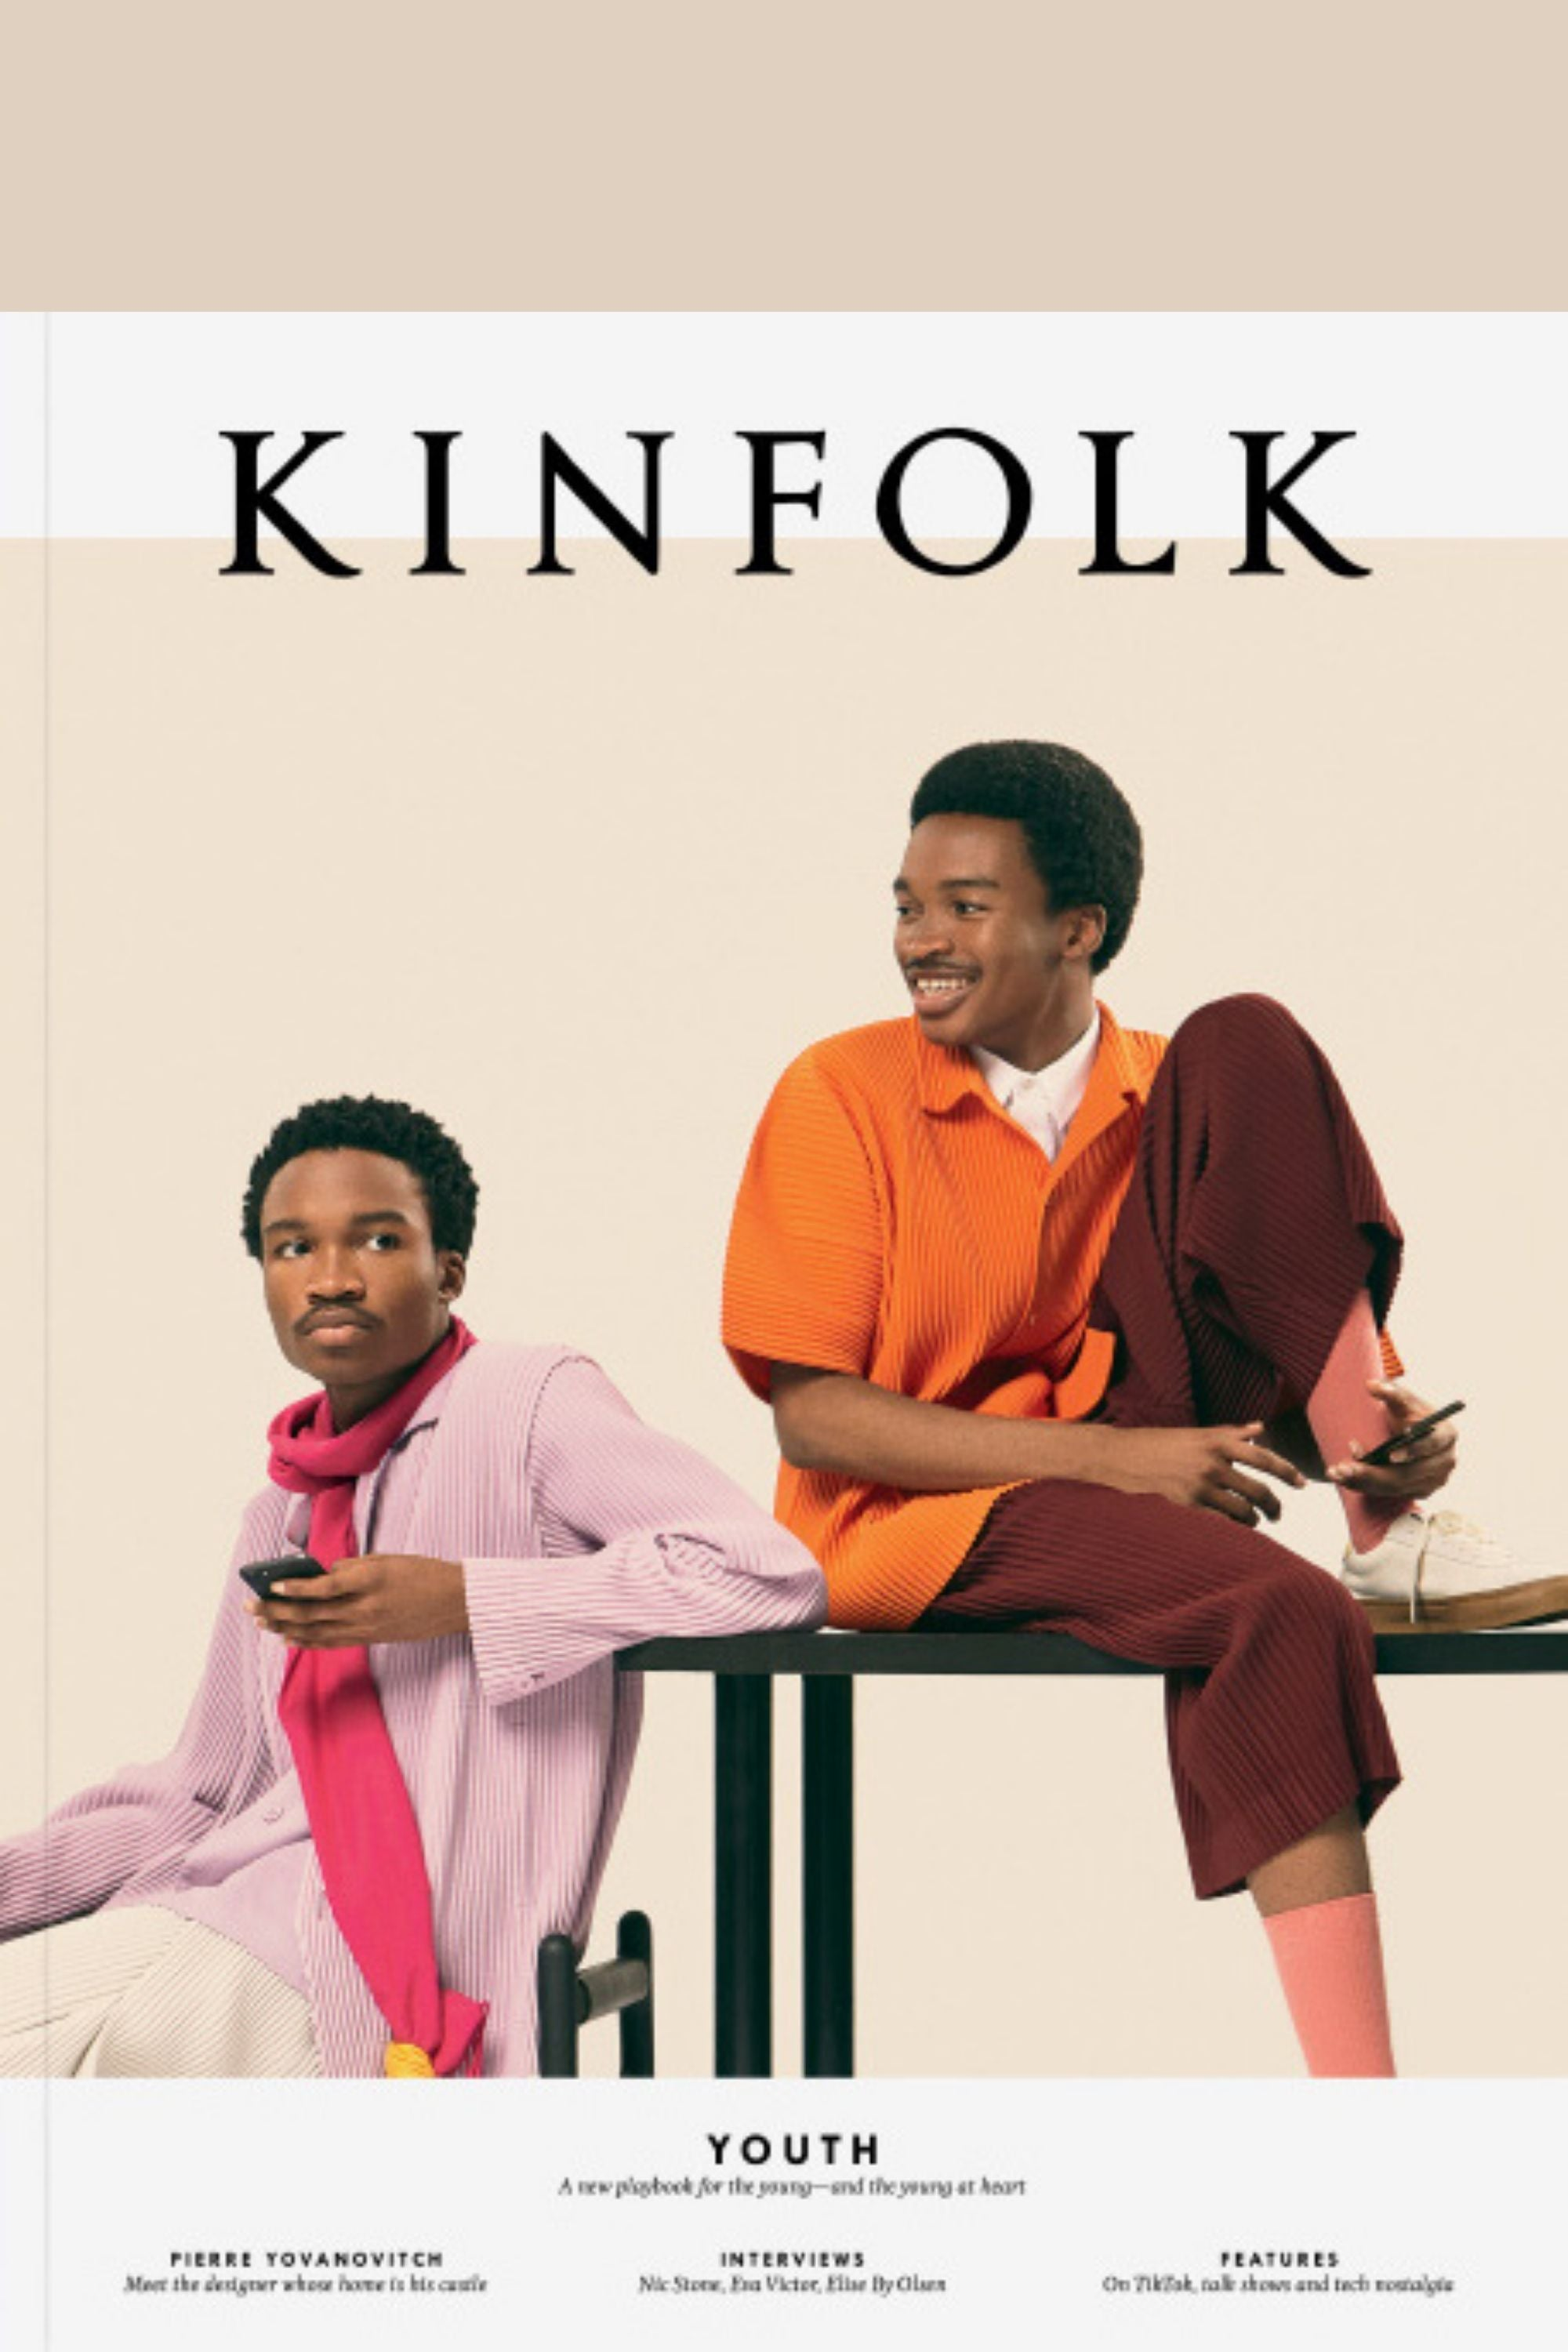 Kinfolk Magazine Volume 39 Youth cover